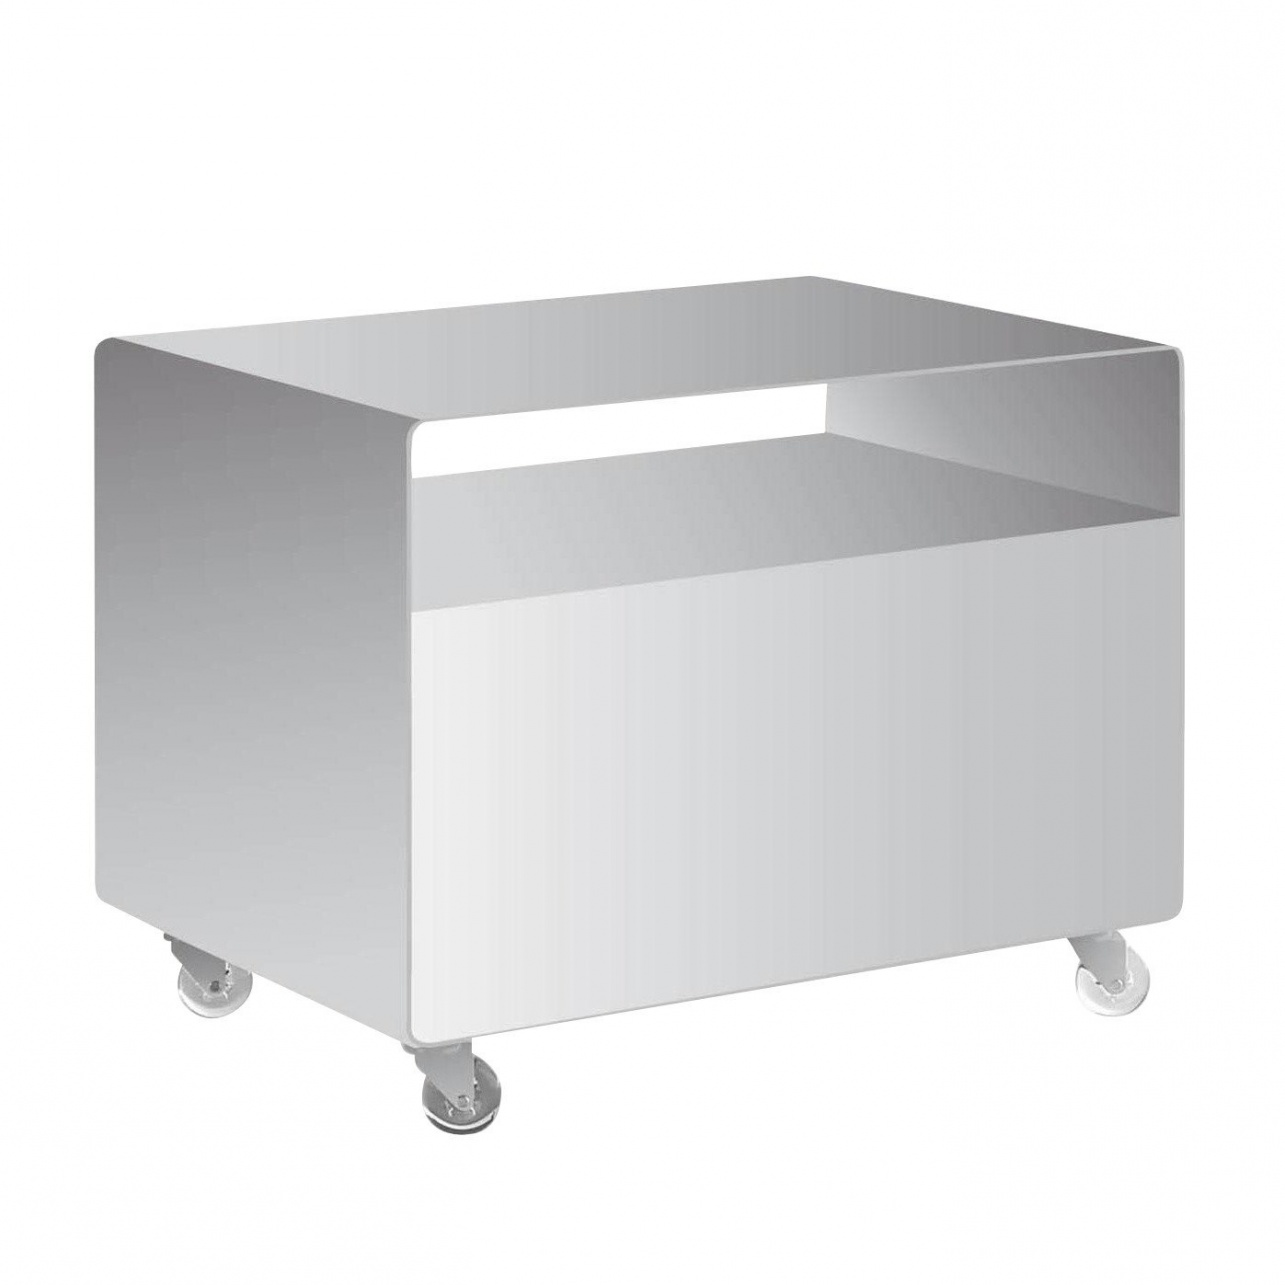 home design nightstand with drawers elegant timmy accent table muller mobelfabrikation mobile line rollwagen mit klapptur black drawer night hollywood mirrored side next lamps